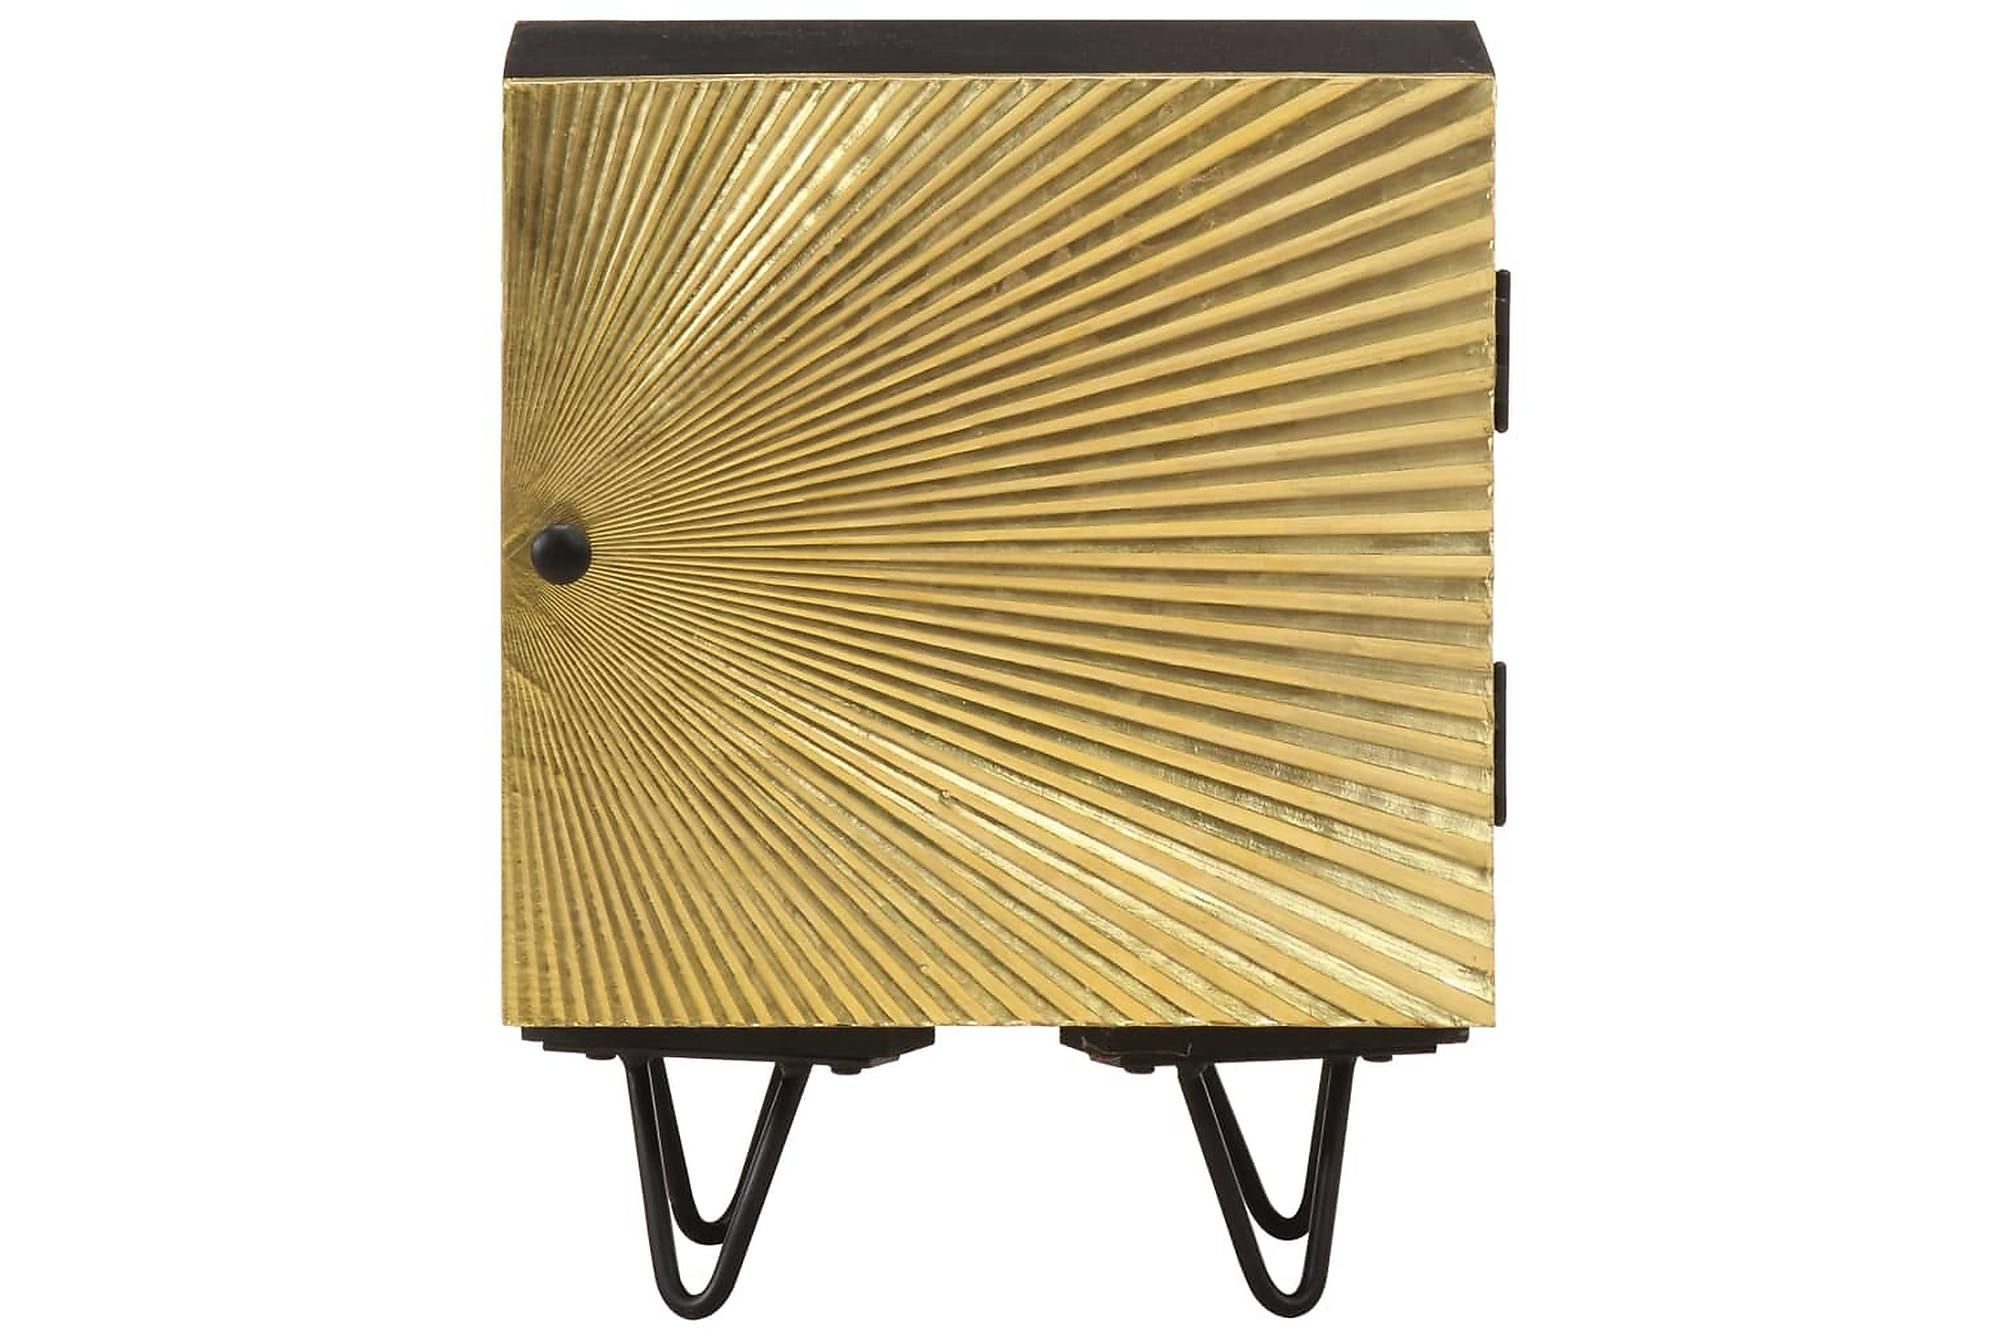 Bedside table with brass front 40x30x50 cm solid mango wood